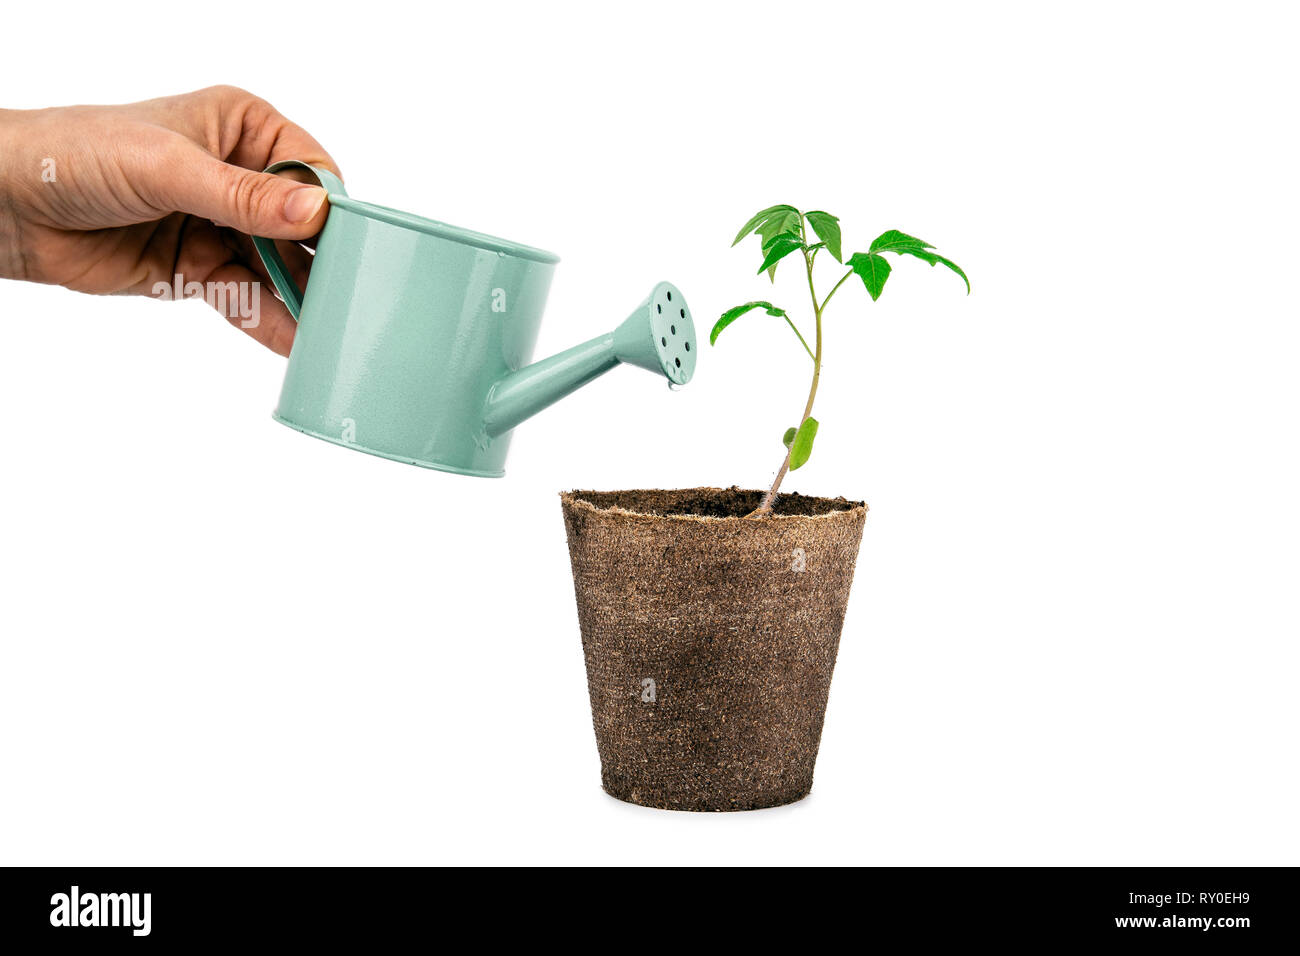 plant of tomato with hand and watering can isolated on white - Stock Image